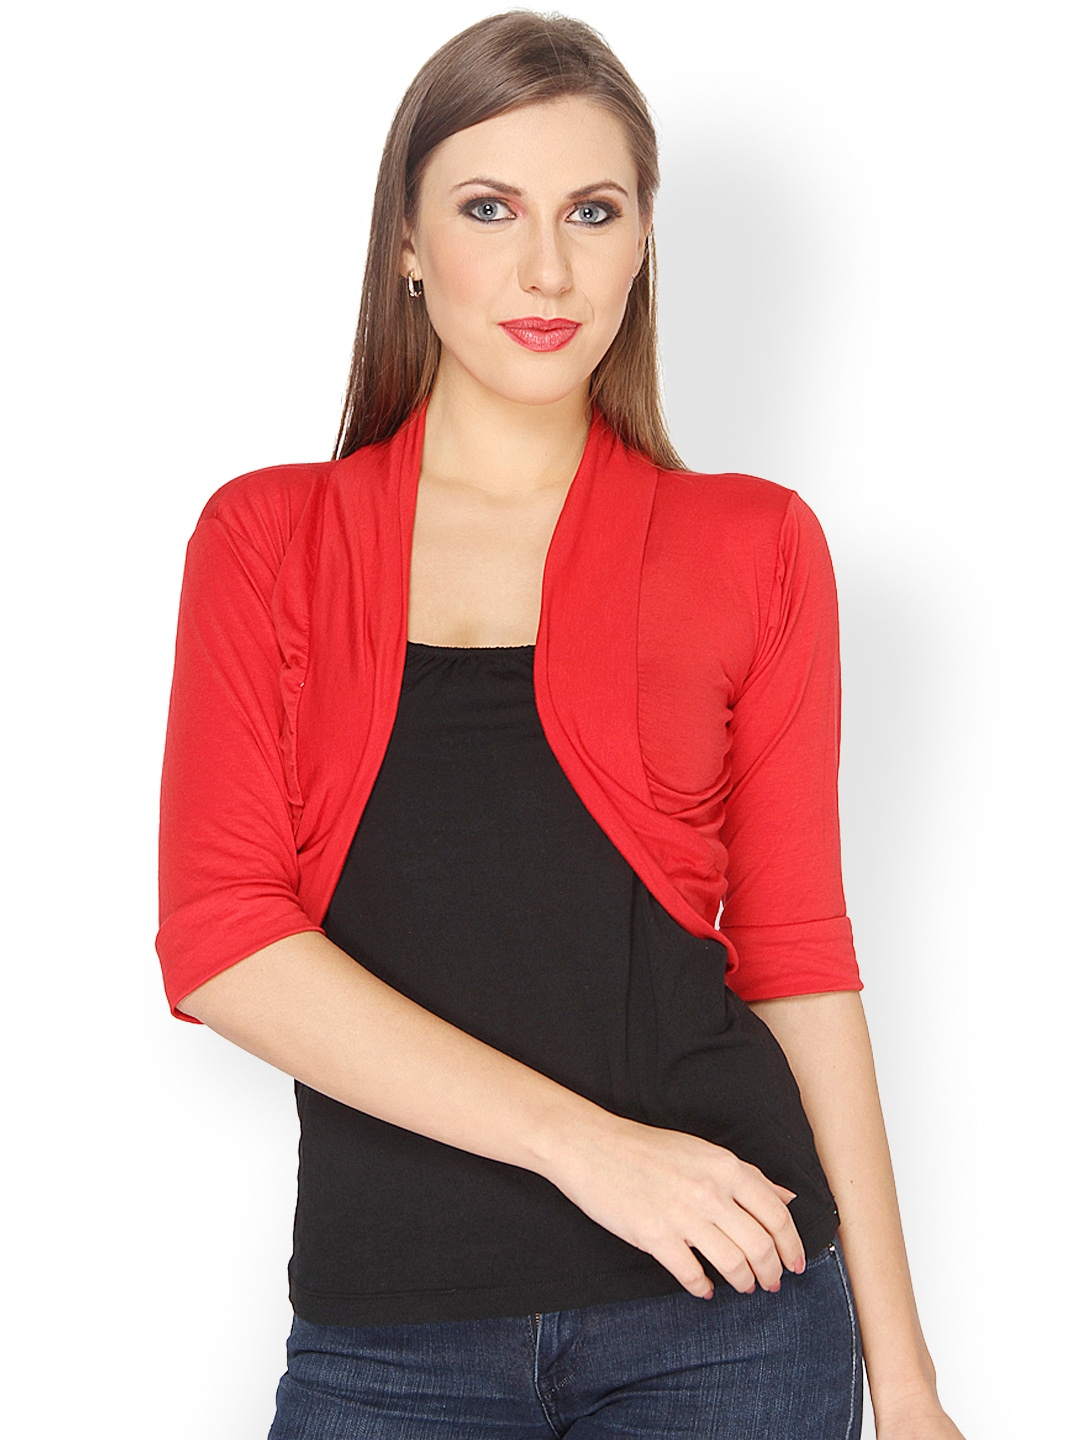 Jazz up her look with girls cardigans, shrugs, and boleros. Whether you need an elegant bolero for a special occasion dress or just a trendy cardigan to beat the chill we have styles she will love. Pair our shrugs, cardigans, and boleros with tops and pants for a unique boutique look.